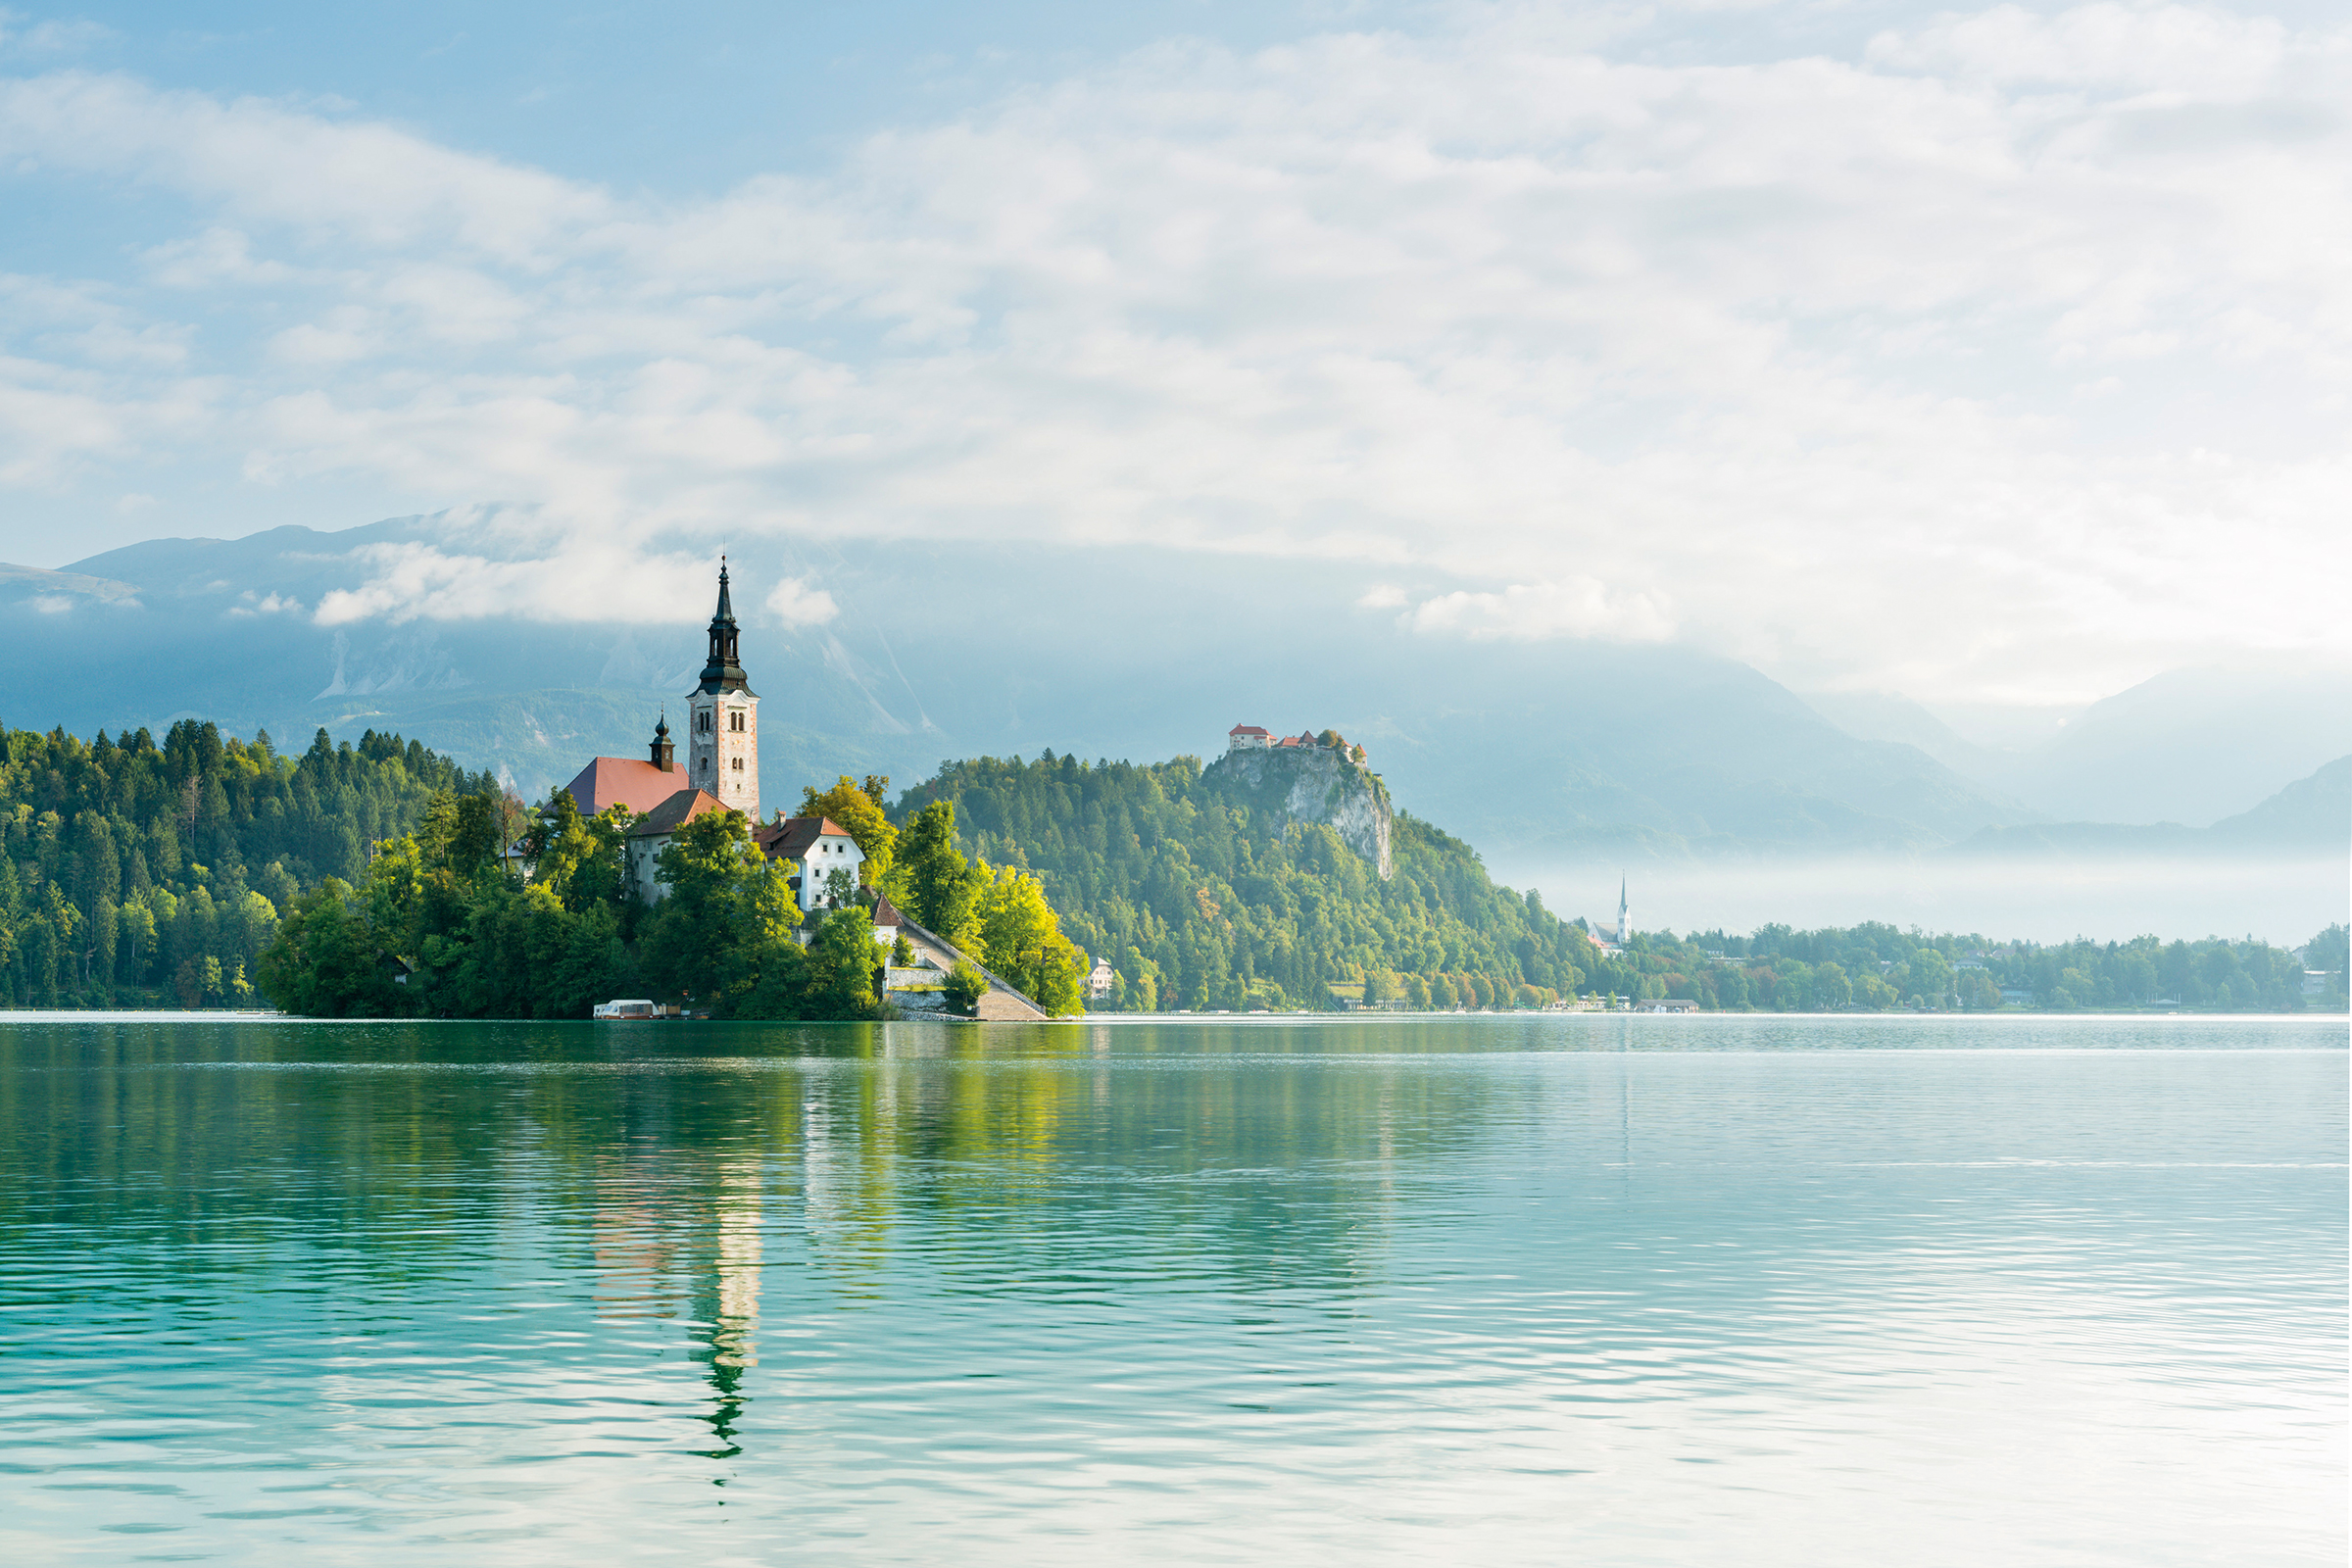 Lake Bled Slovenia on a sunny day